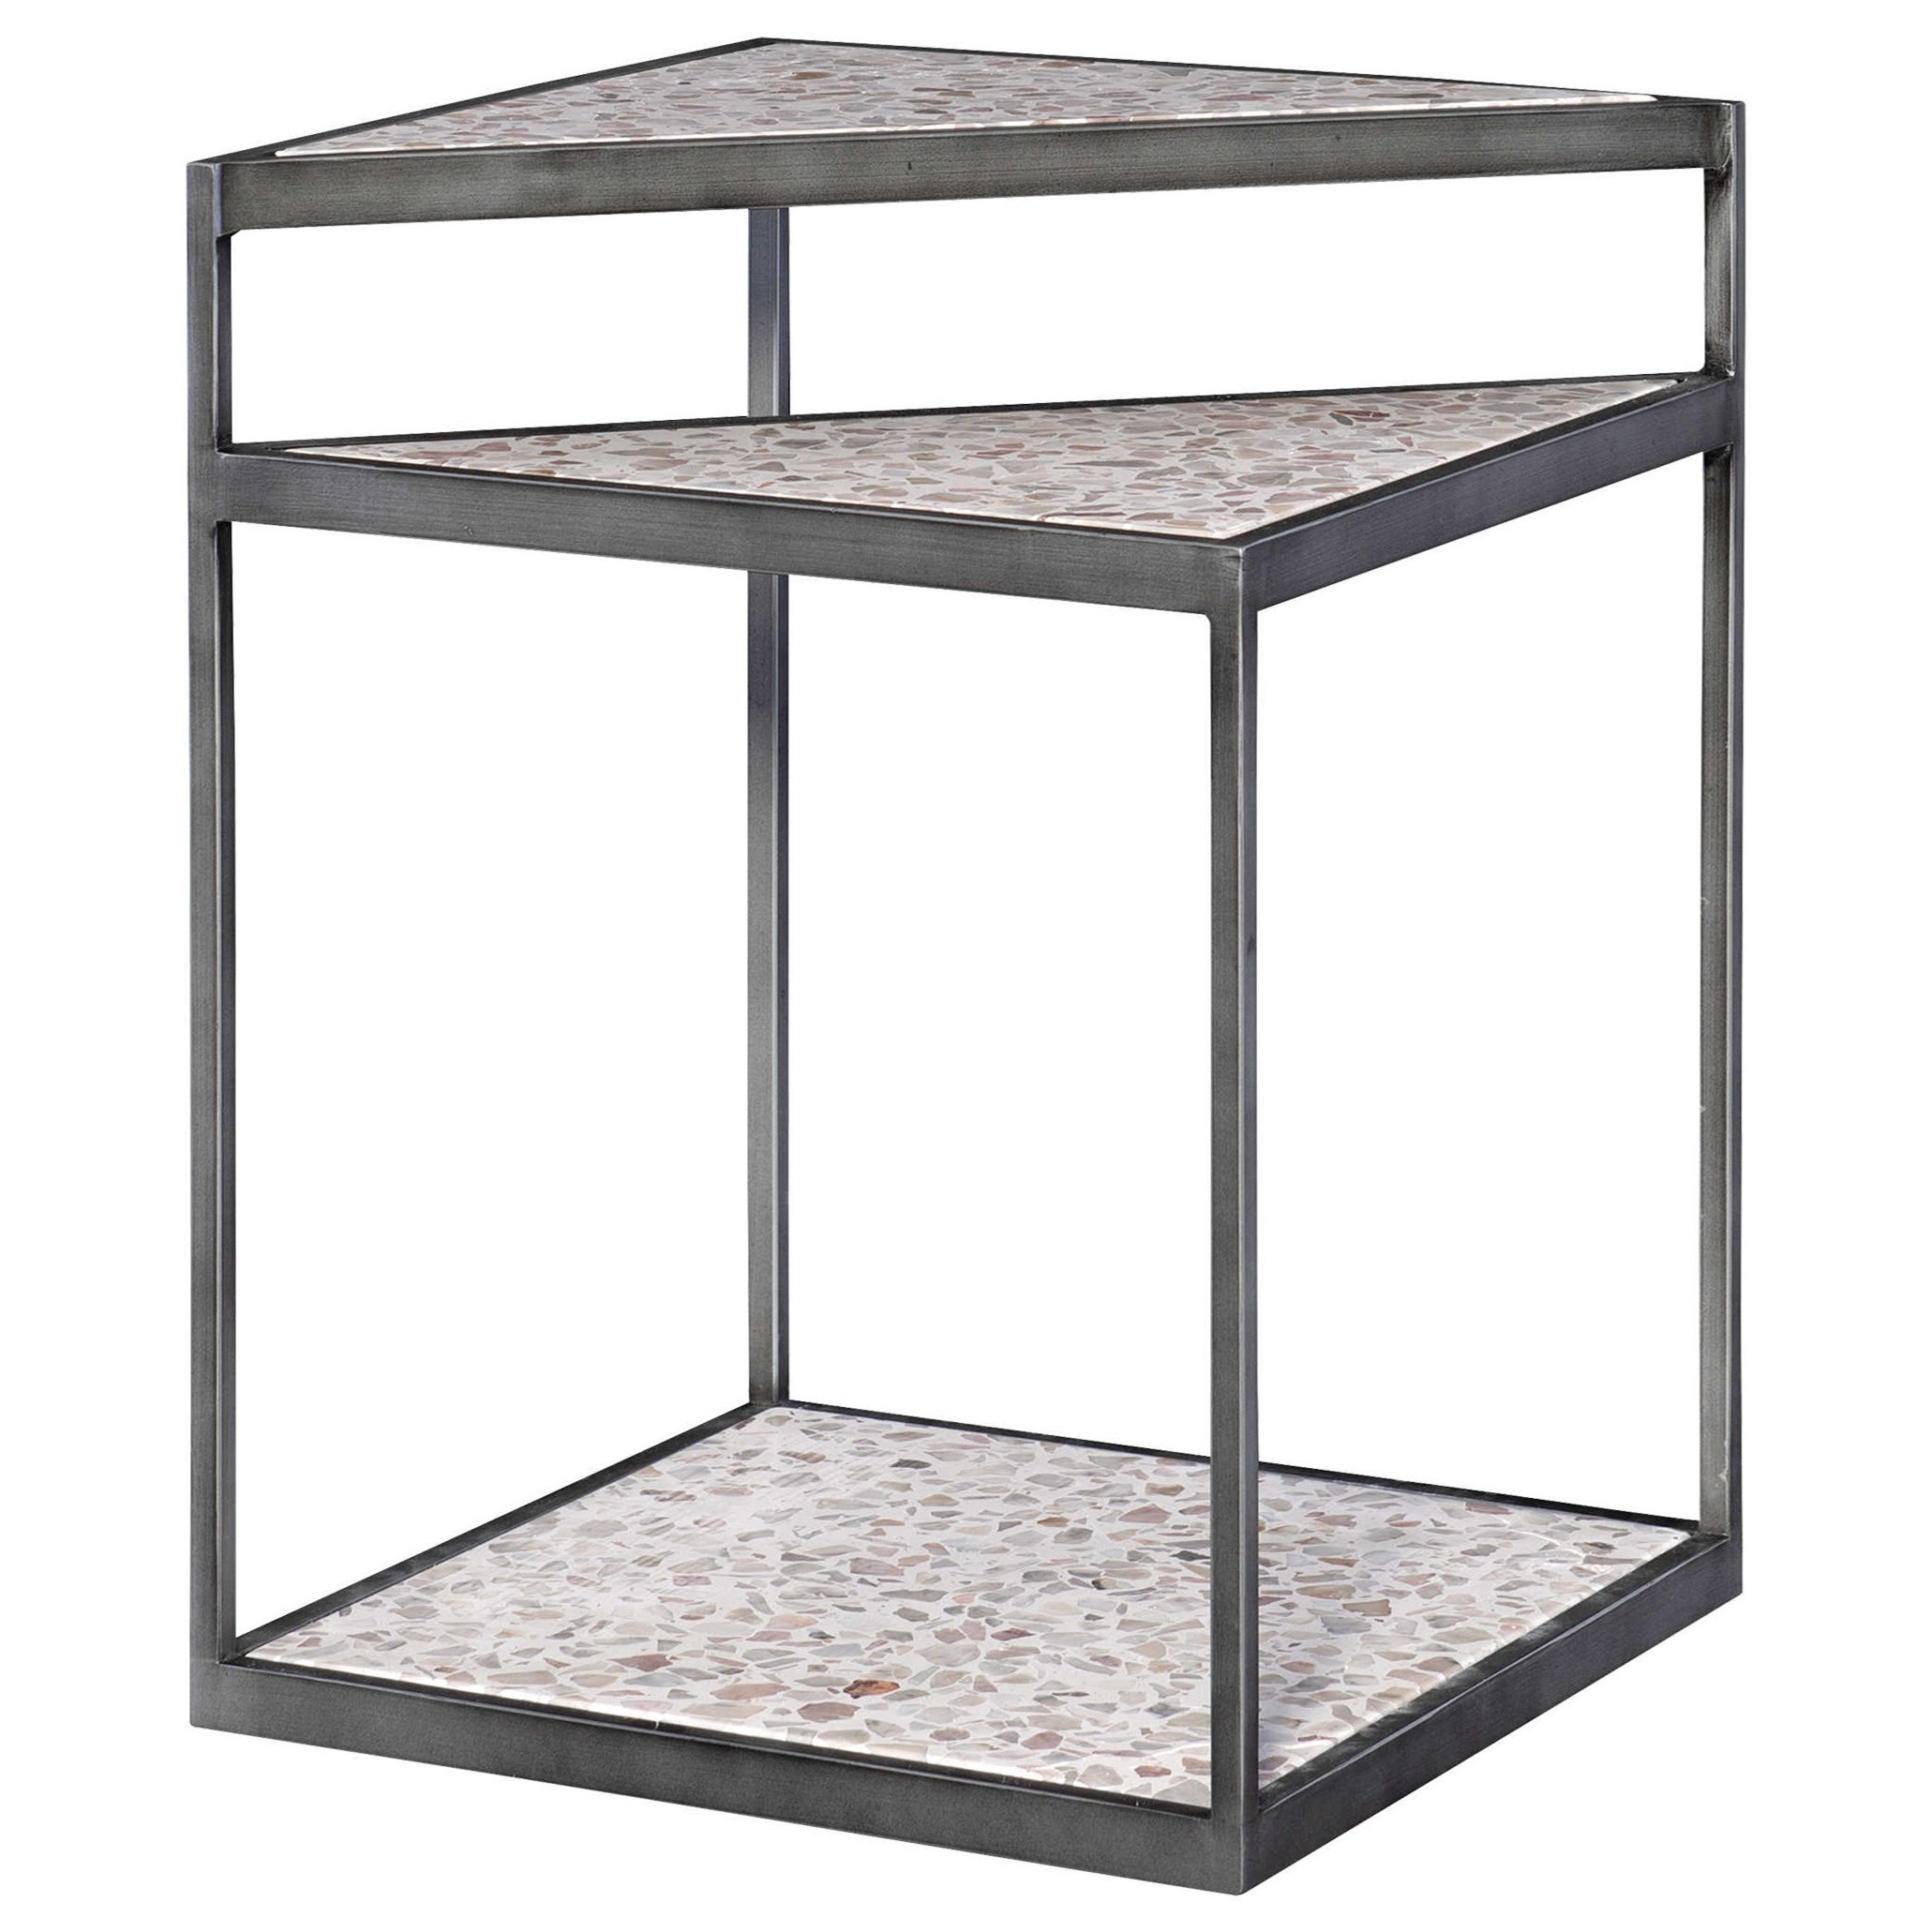 Accent Furniture - Occasional Tables Terra Modern Accent Table by Uttermost at Upper Room Home Furnishings